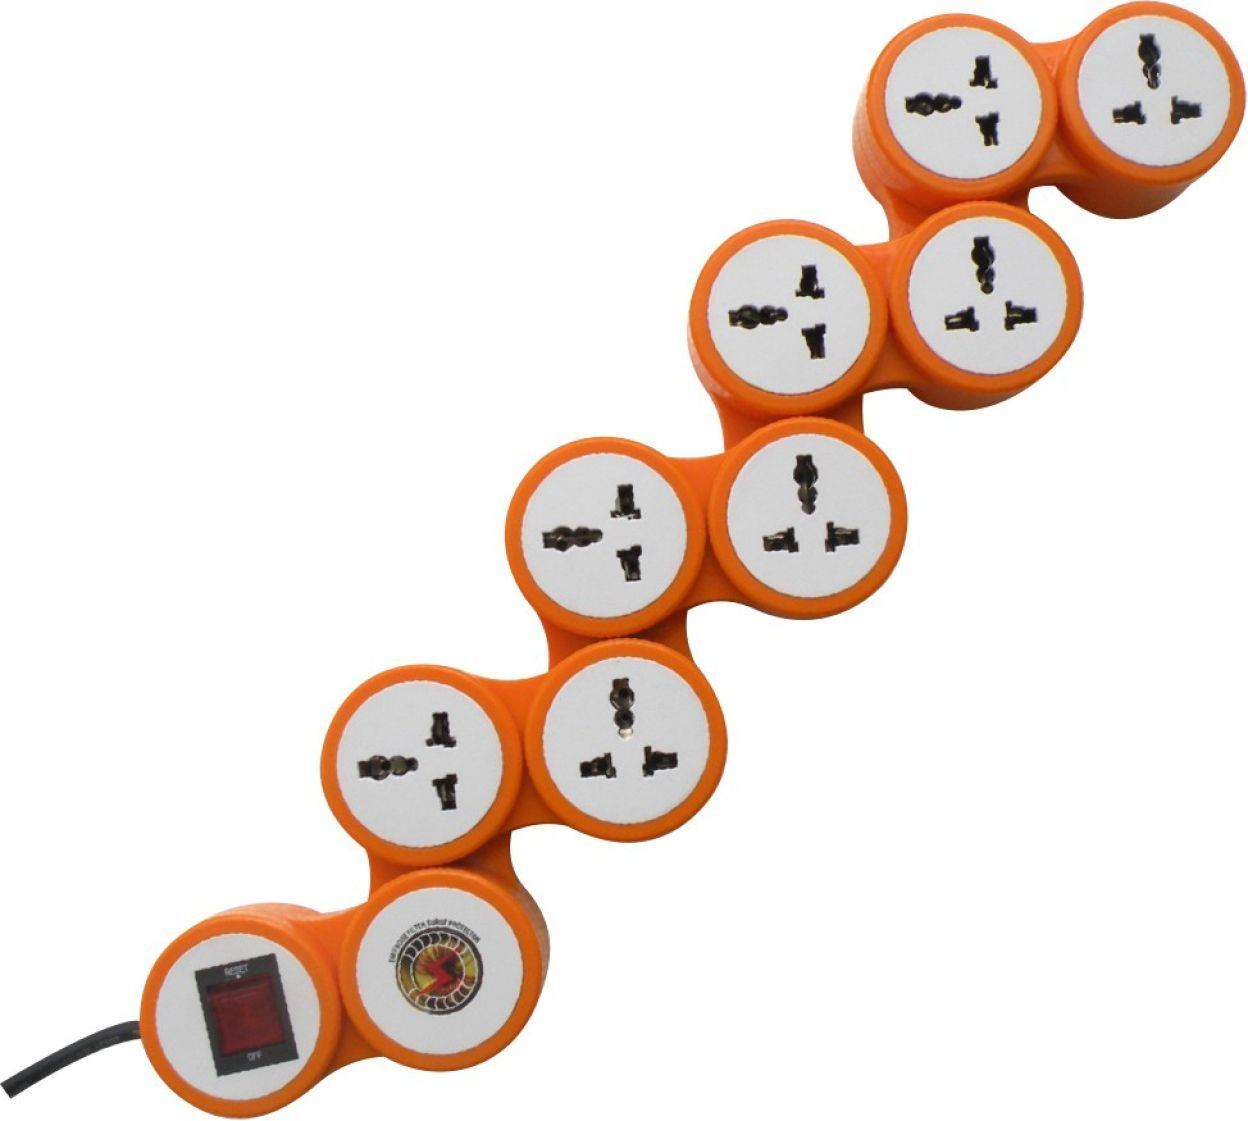 MX 3324 8 Outlet Snake Surge Protector